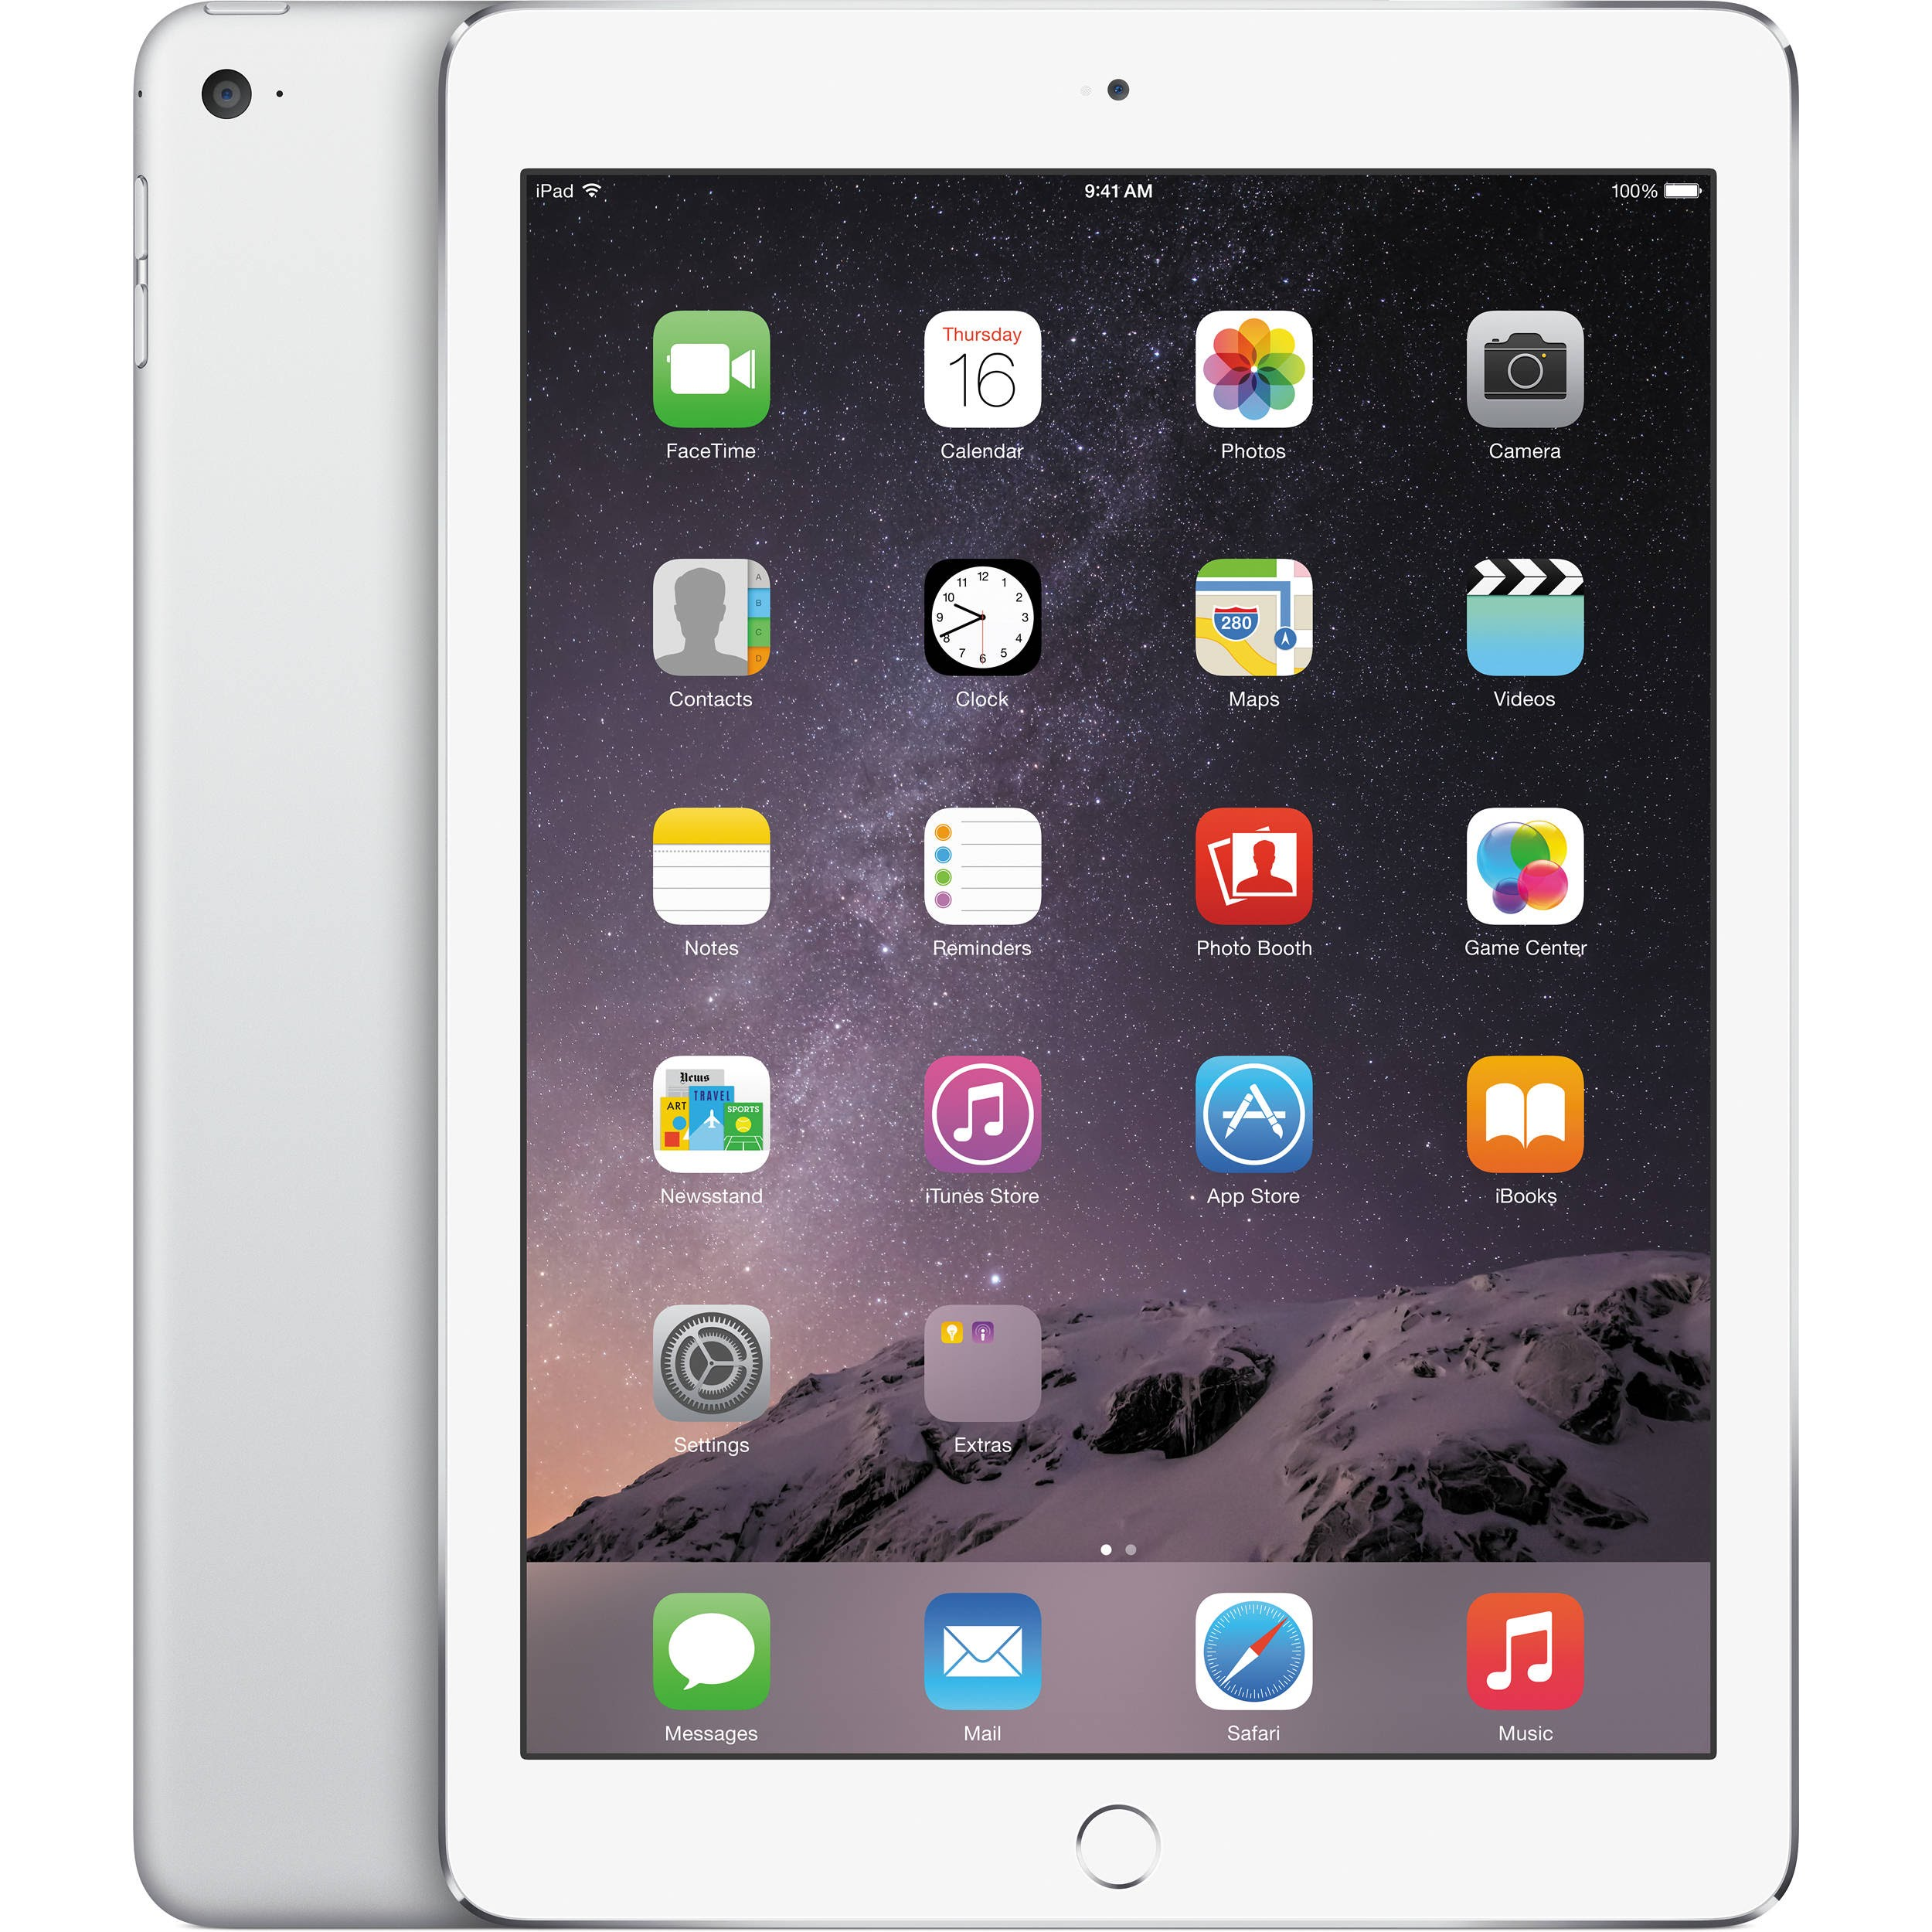 iPad-mini-4-with-overclocked-A8-processor-and-2GB-RAM